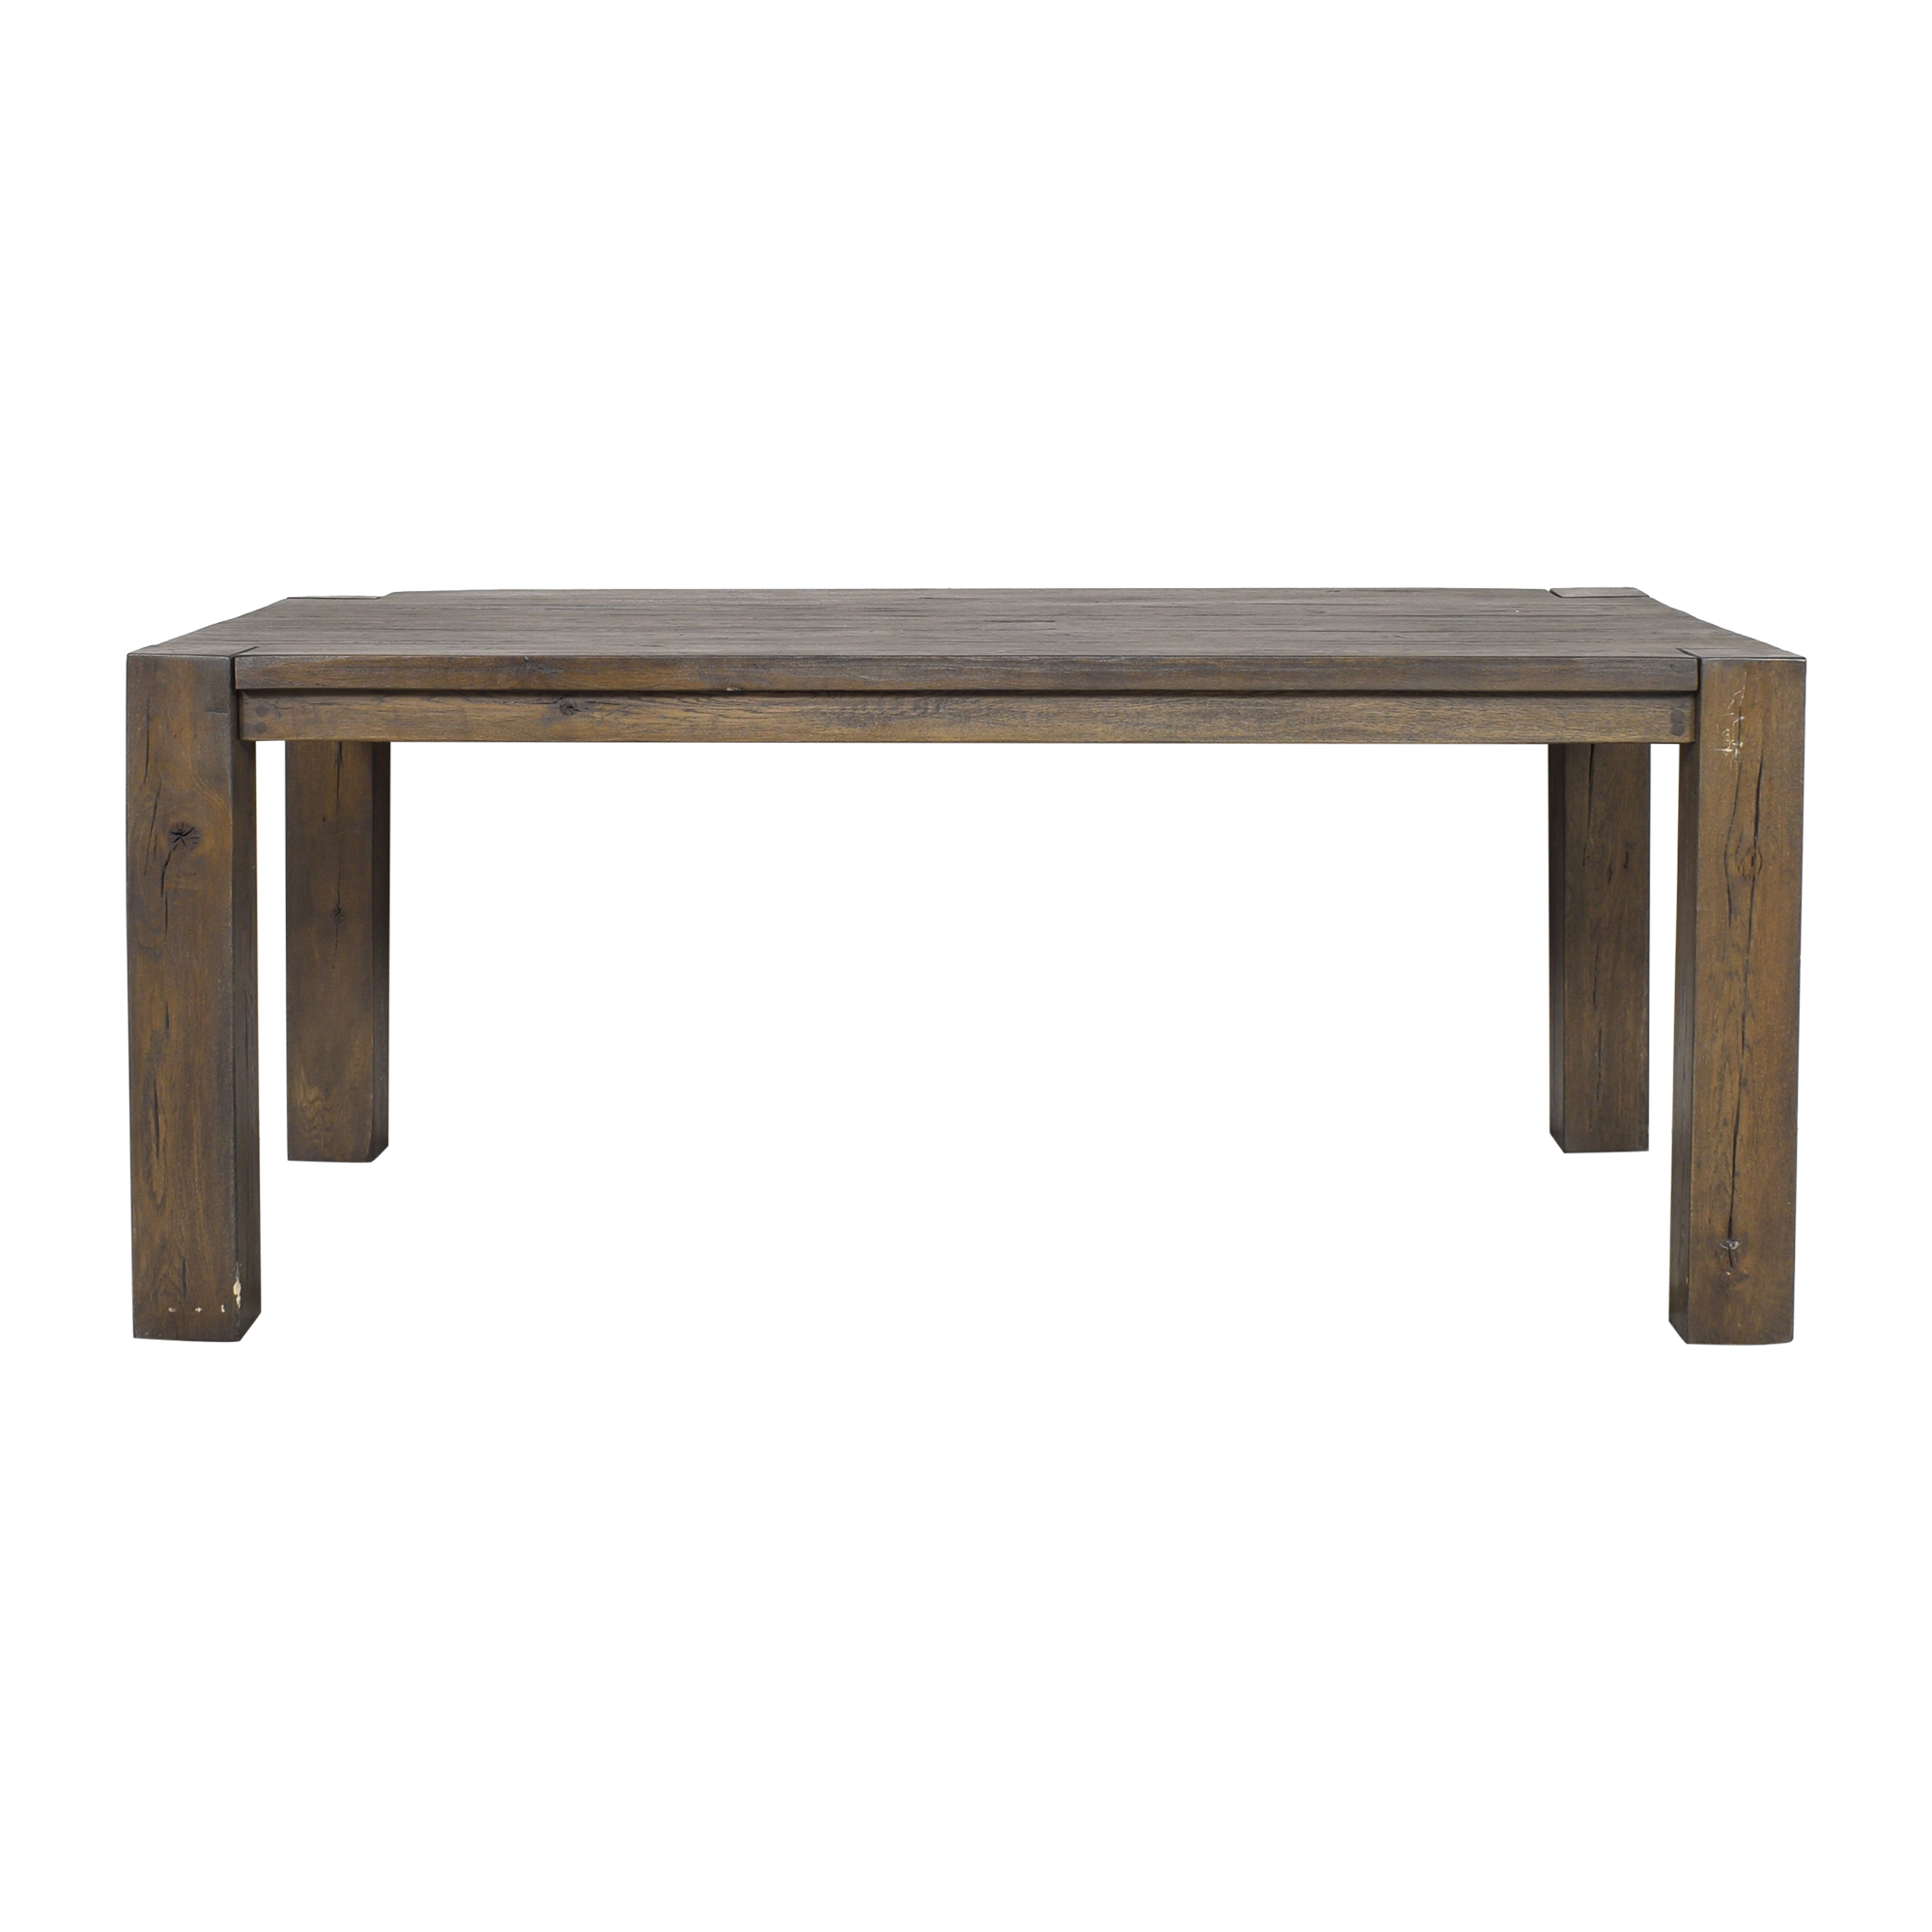 Restoration Hardware Restoration Hardware Reclaimed Russian Oak Parsons Rectangular Dining Table ct